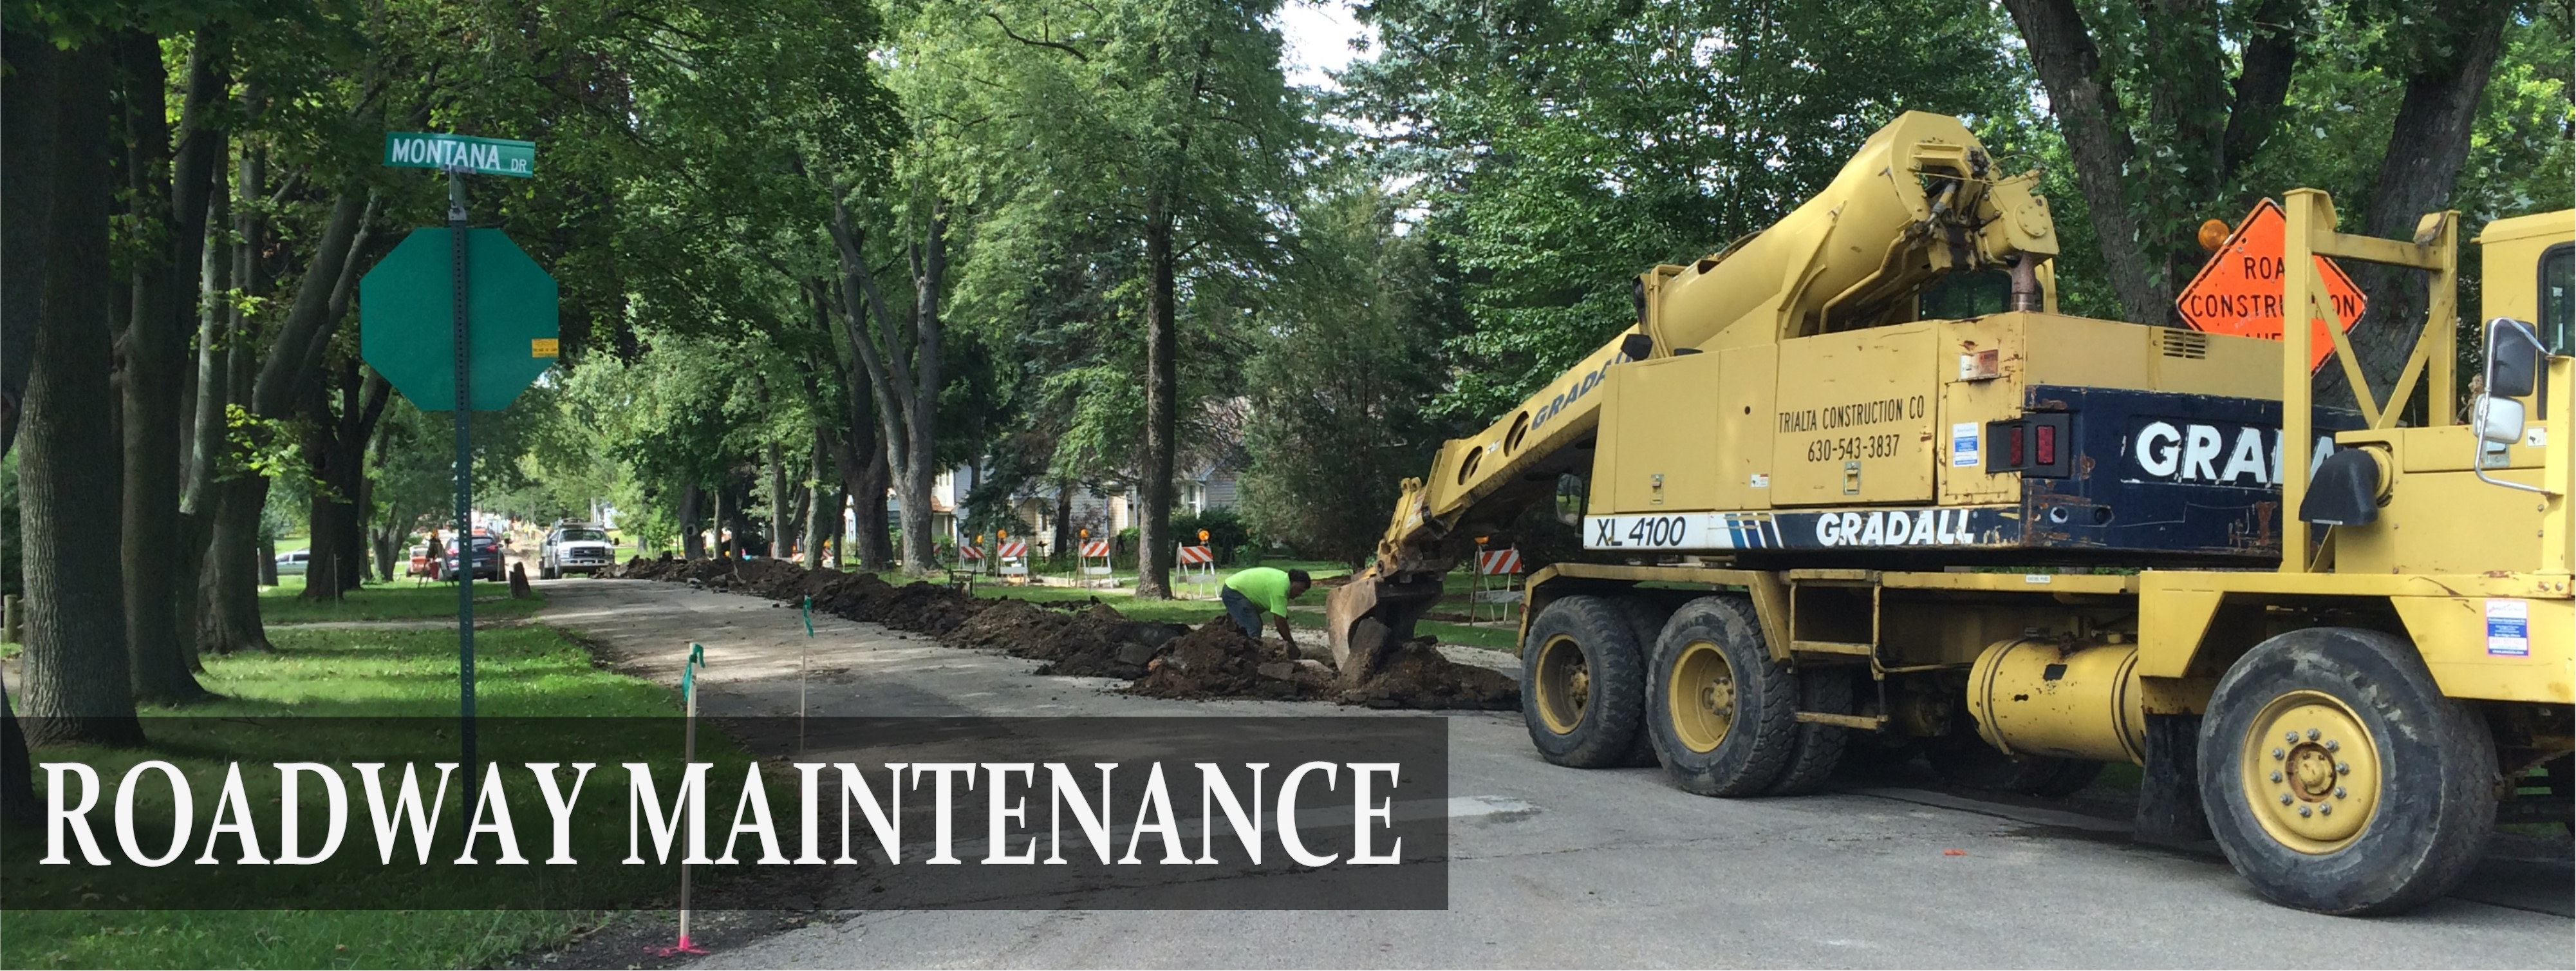 ROADWAY MAINTENANCE